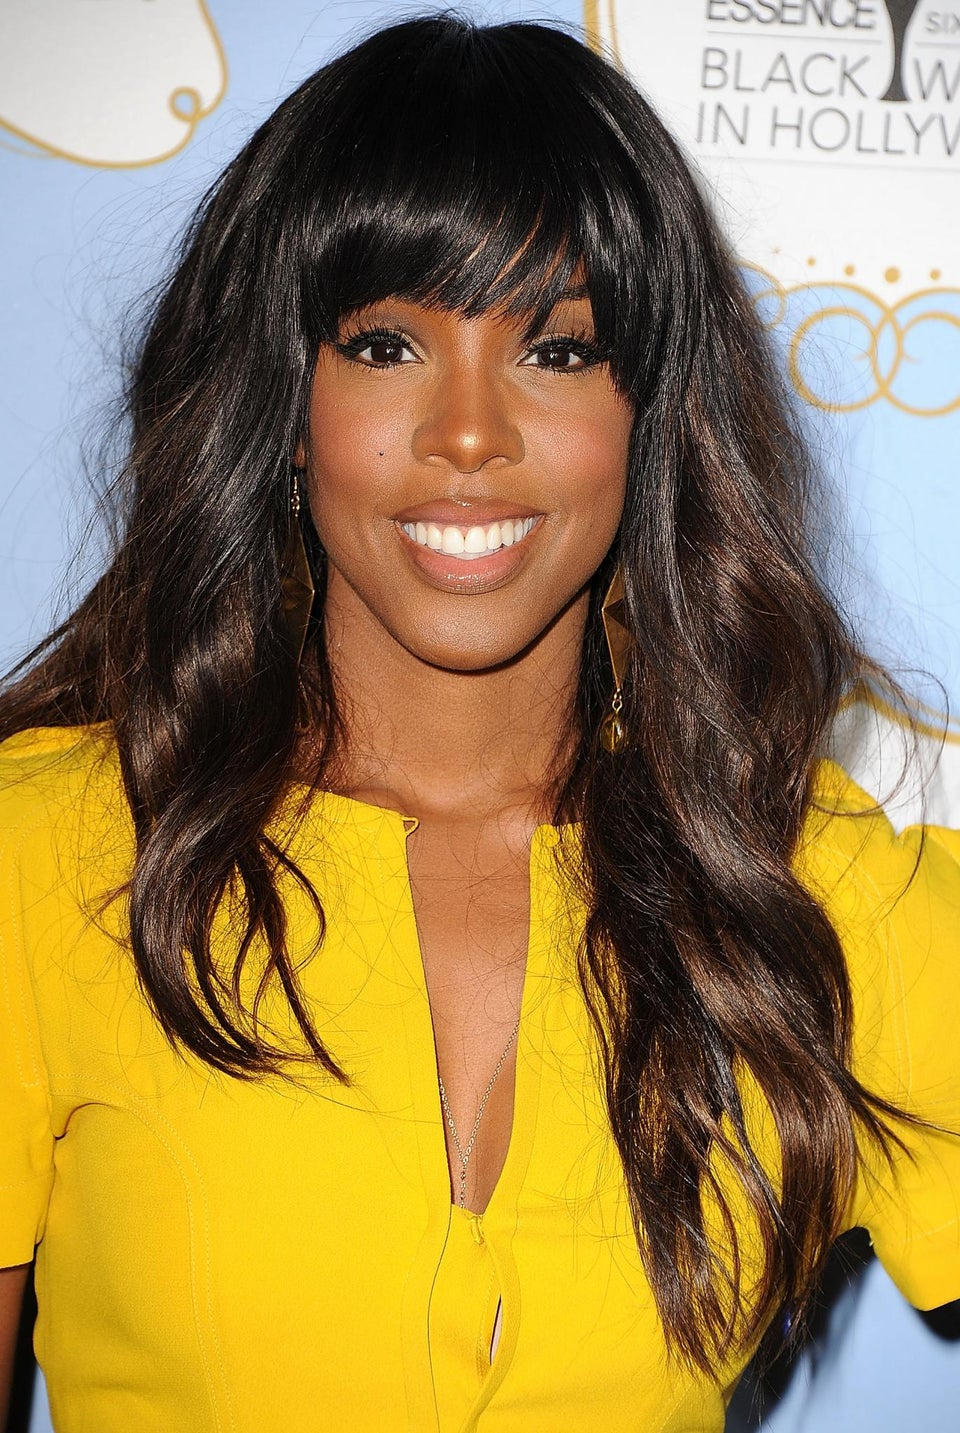 Kelly Rowland Remembers Praying While Stranded at Sea